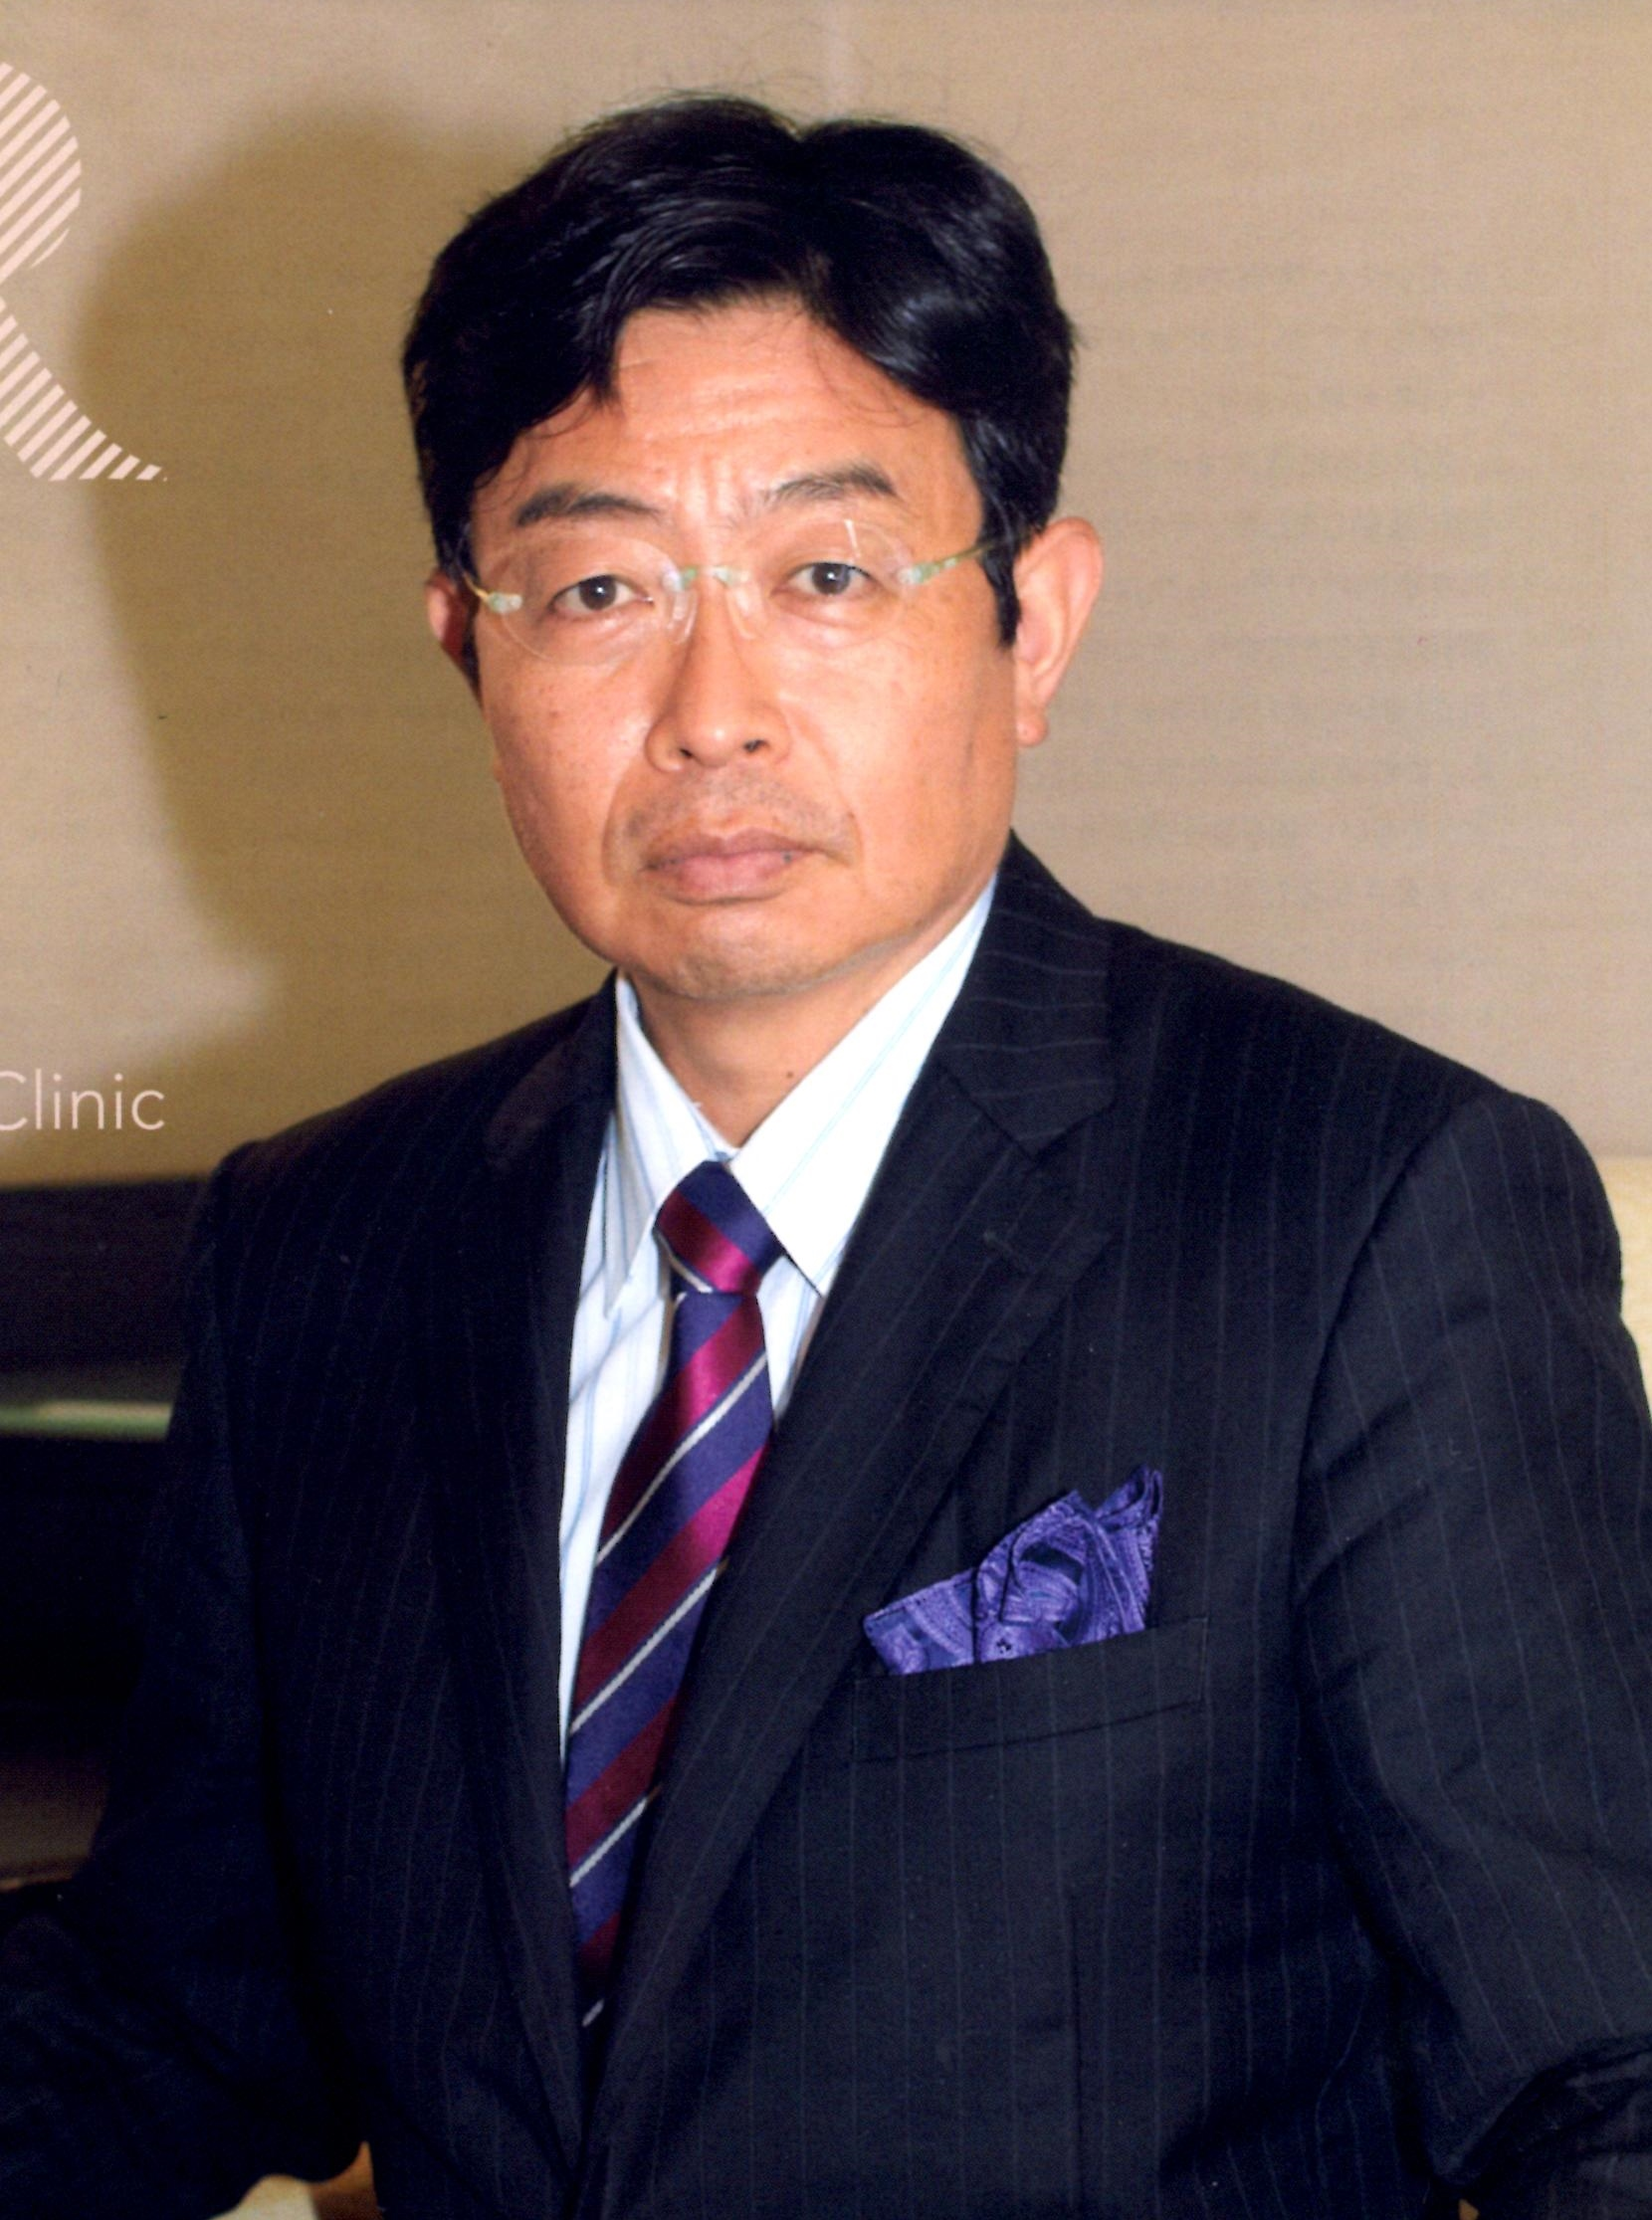 Meetings International - Dental Meeting 2018 Conference Keynote Speaker Yoshiro Fujii photo